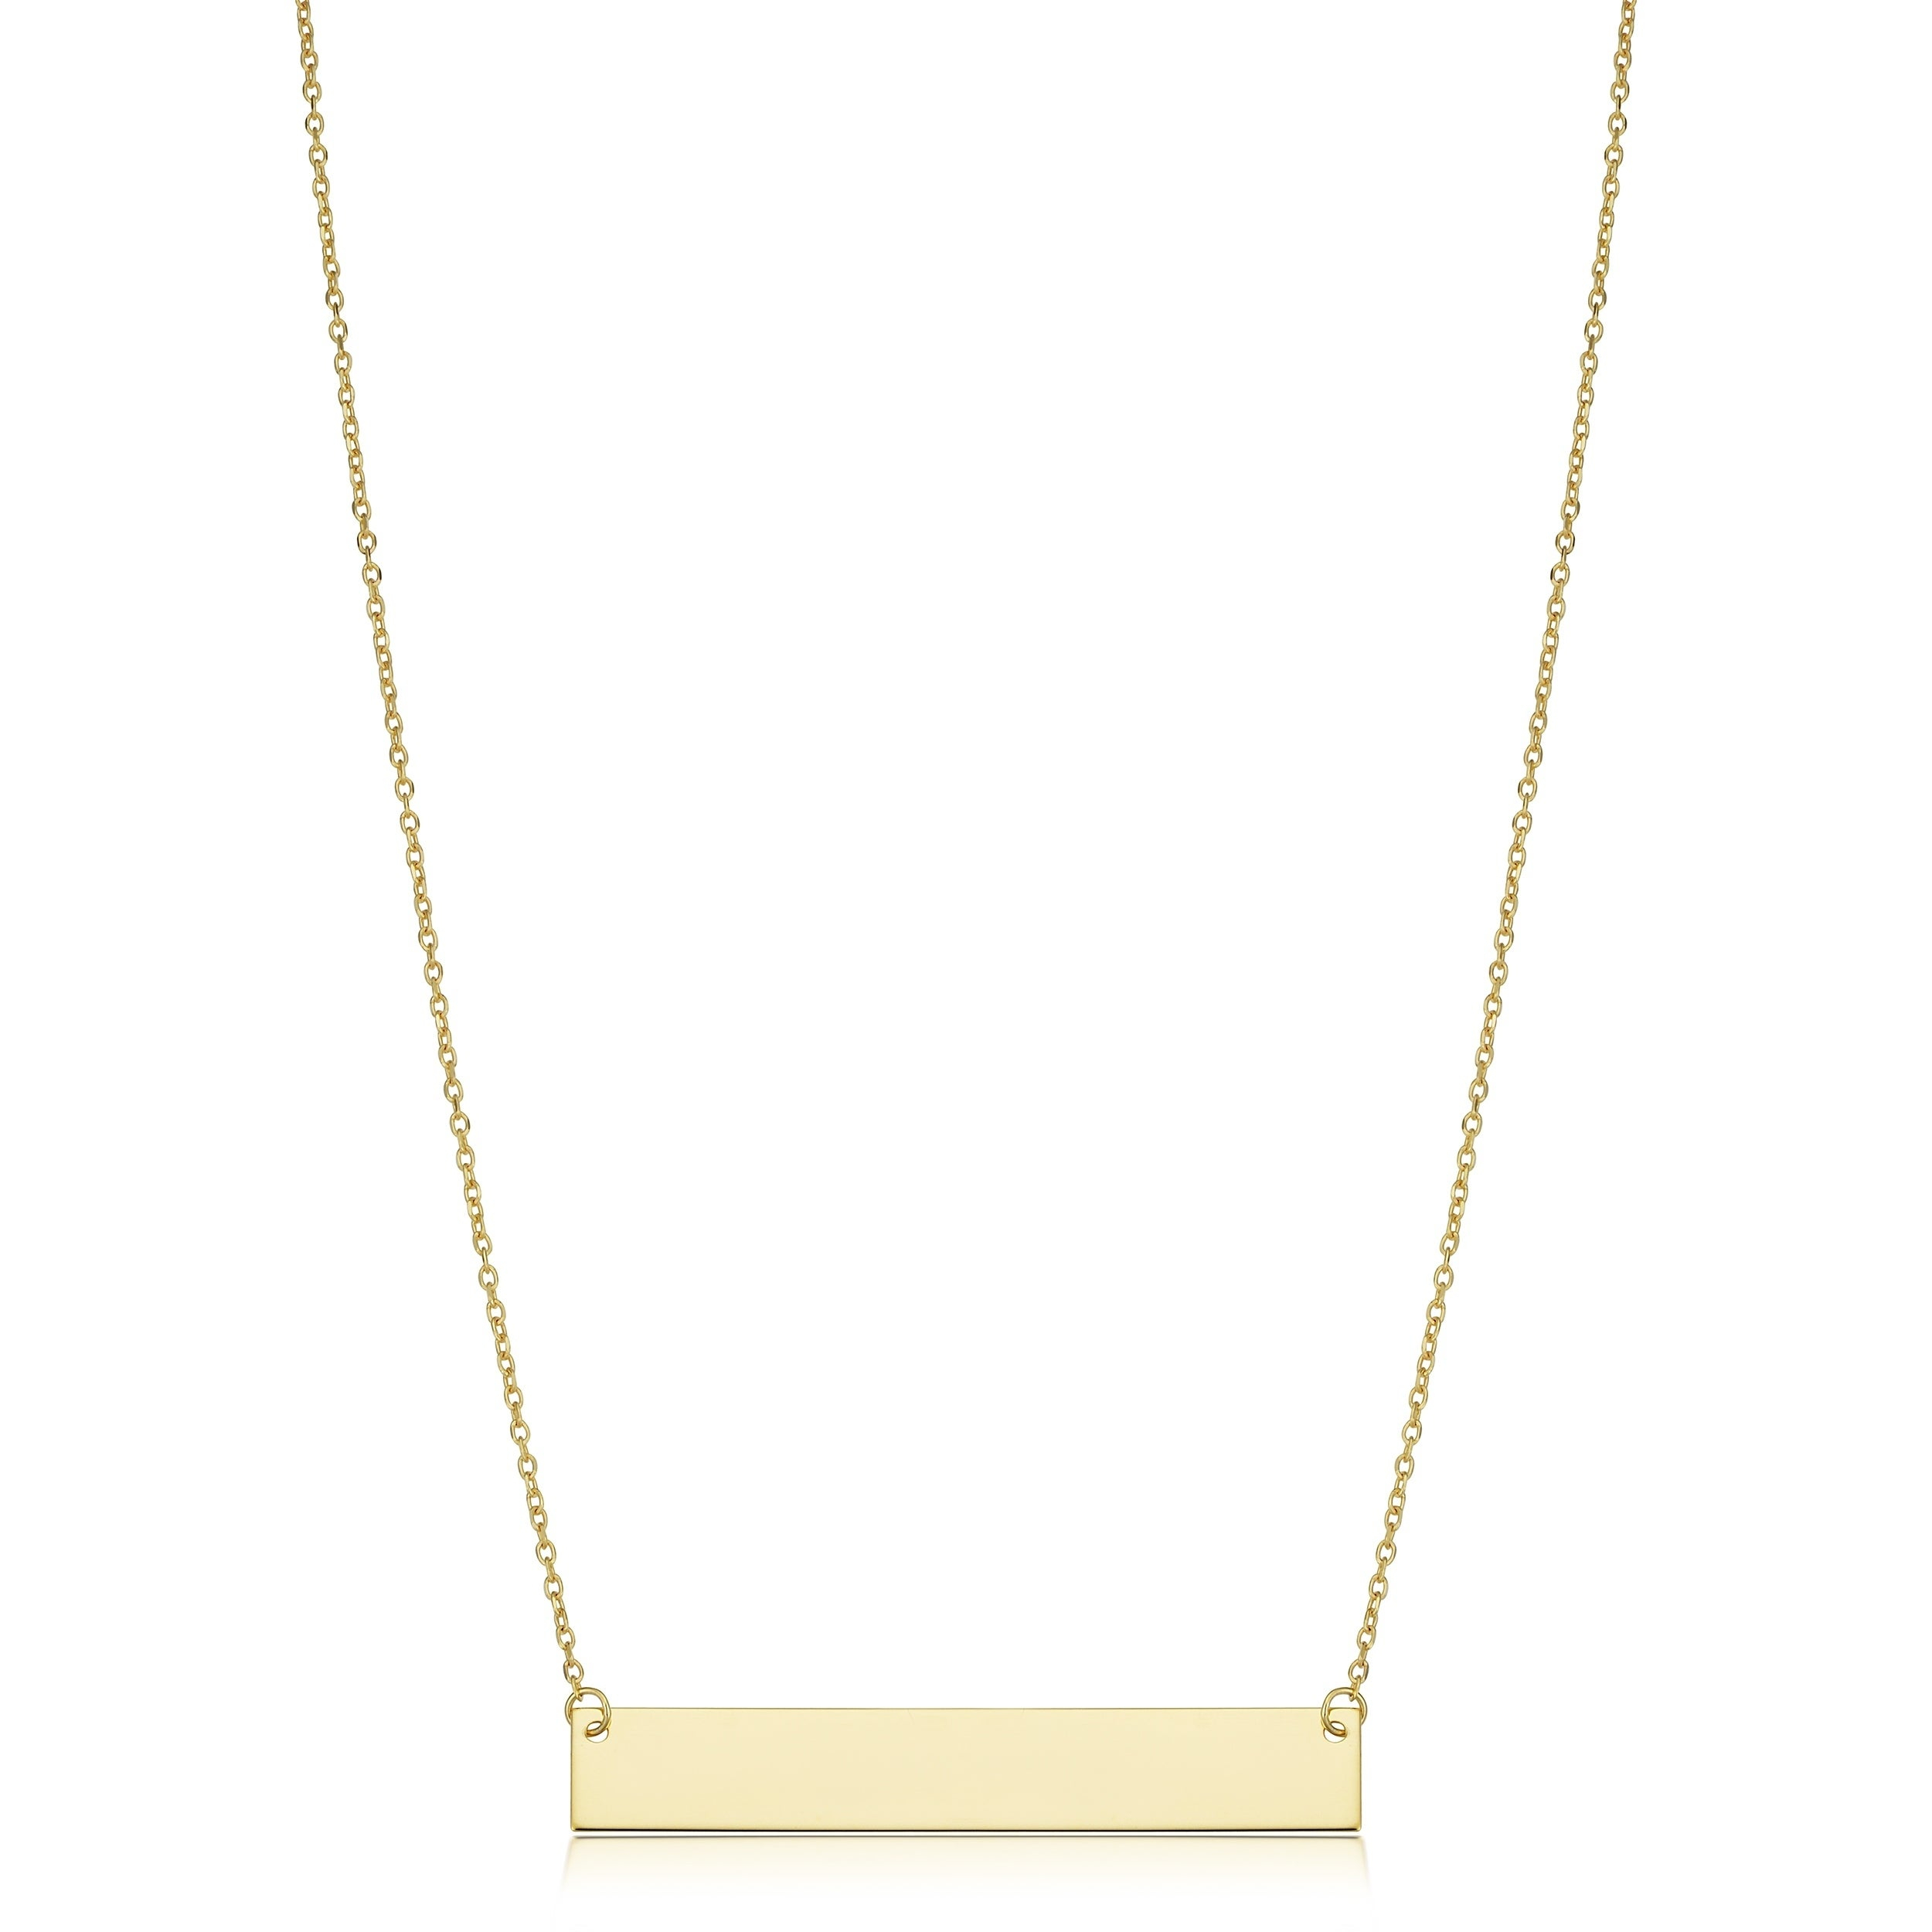 10K Or 14K Gold Engraveable Bar Cable Chain Necklace (18 Inch) Within Most Up To Date Classic Cable Chain Necklaces (View 1 of 25)